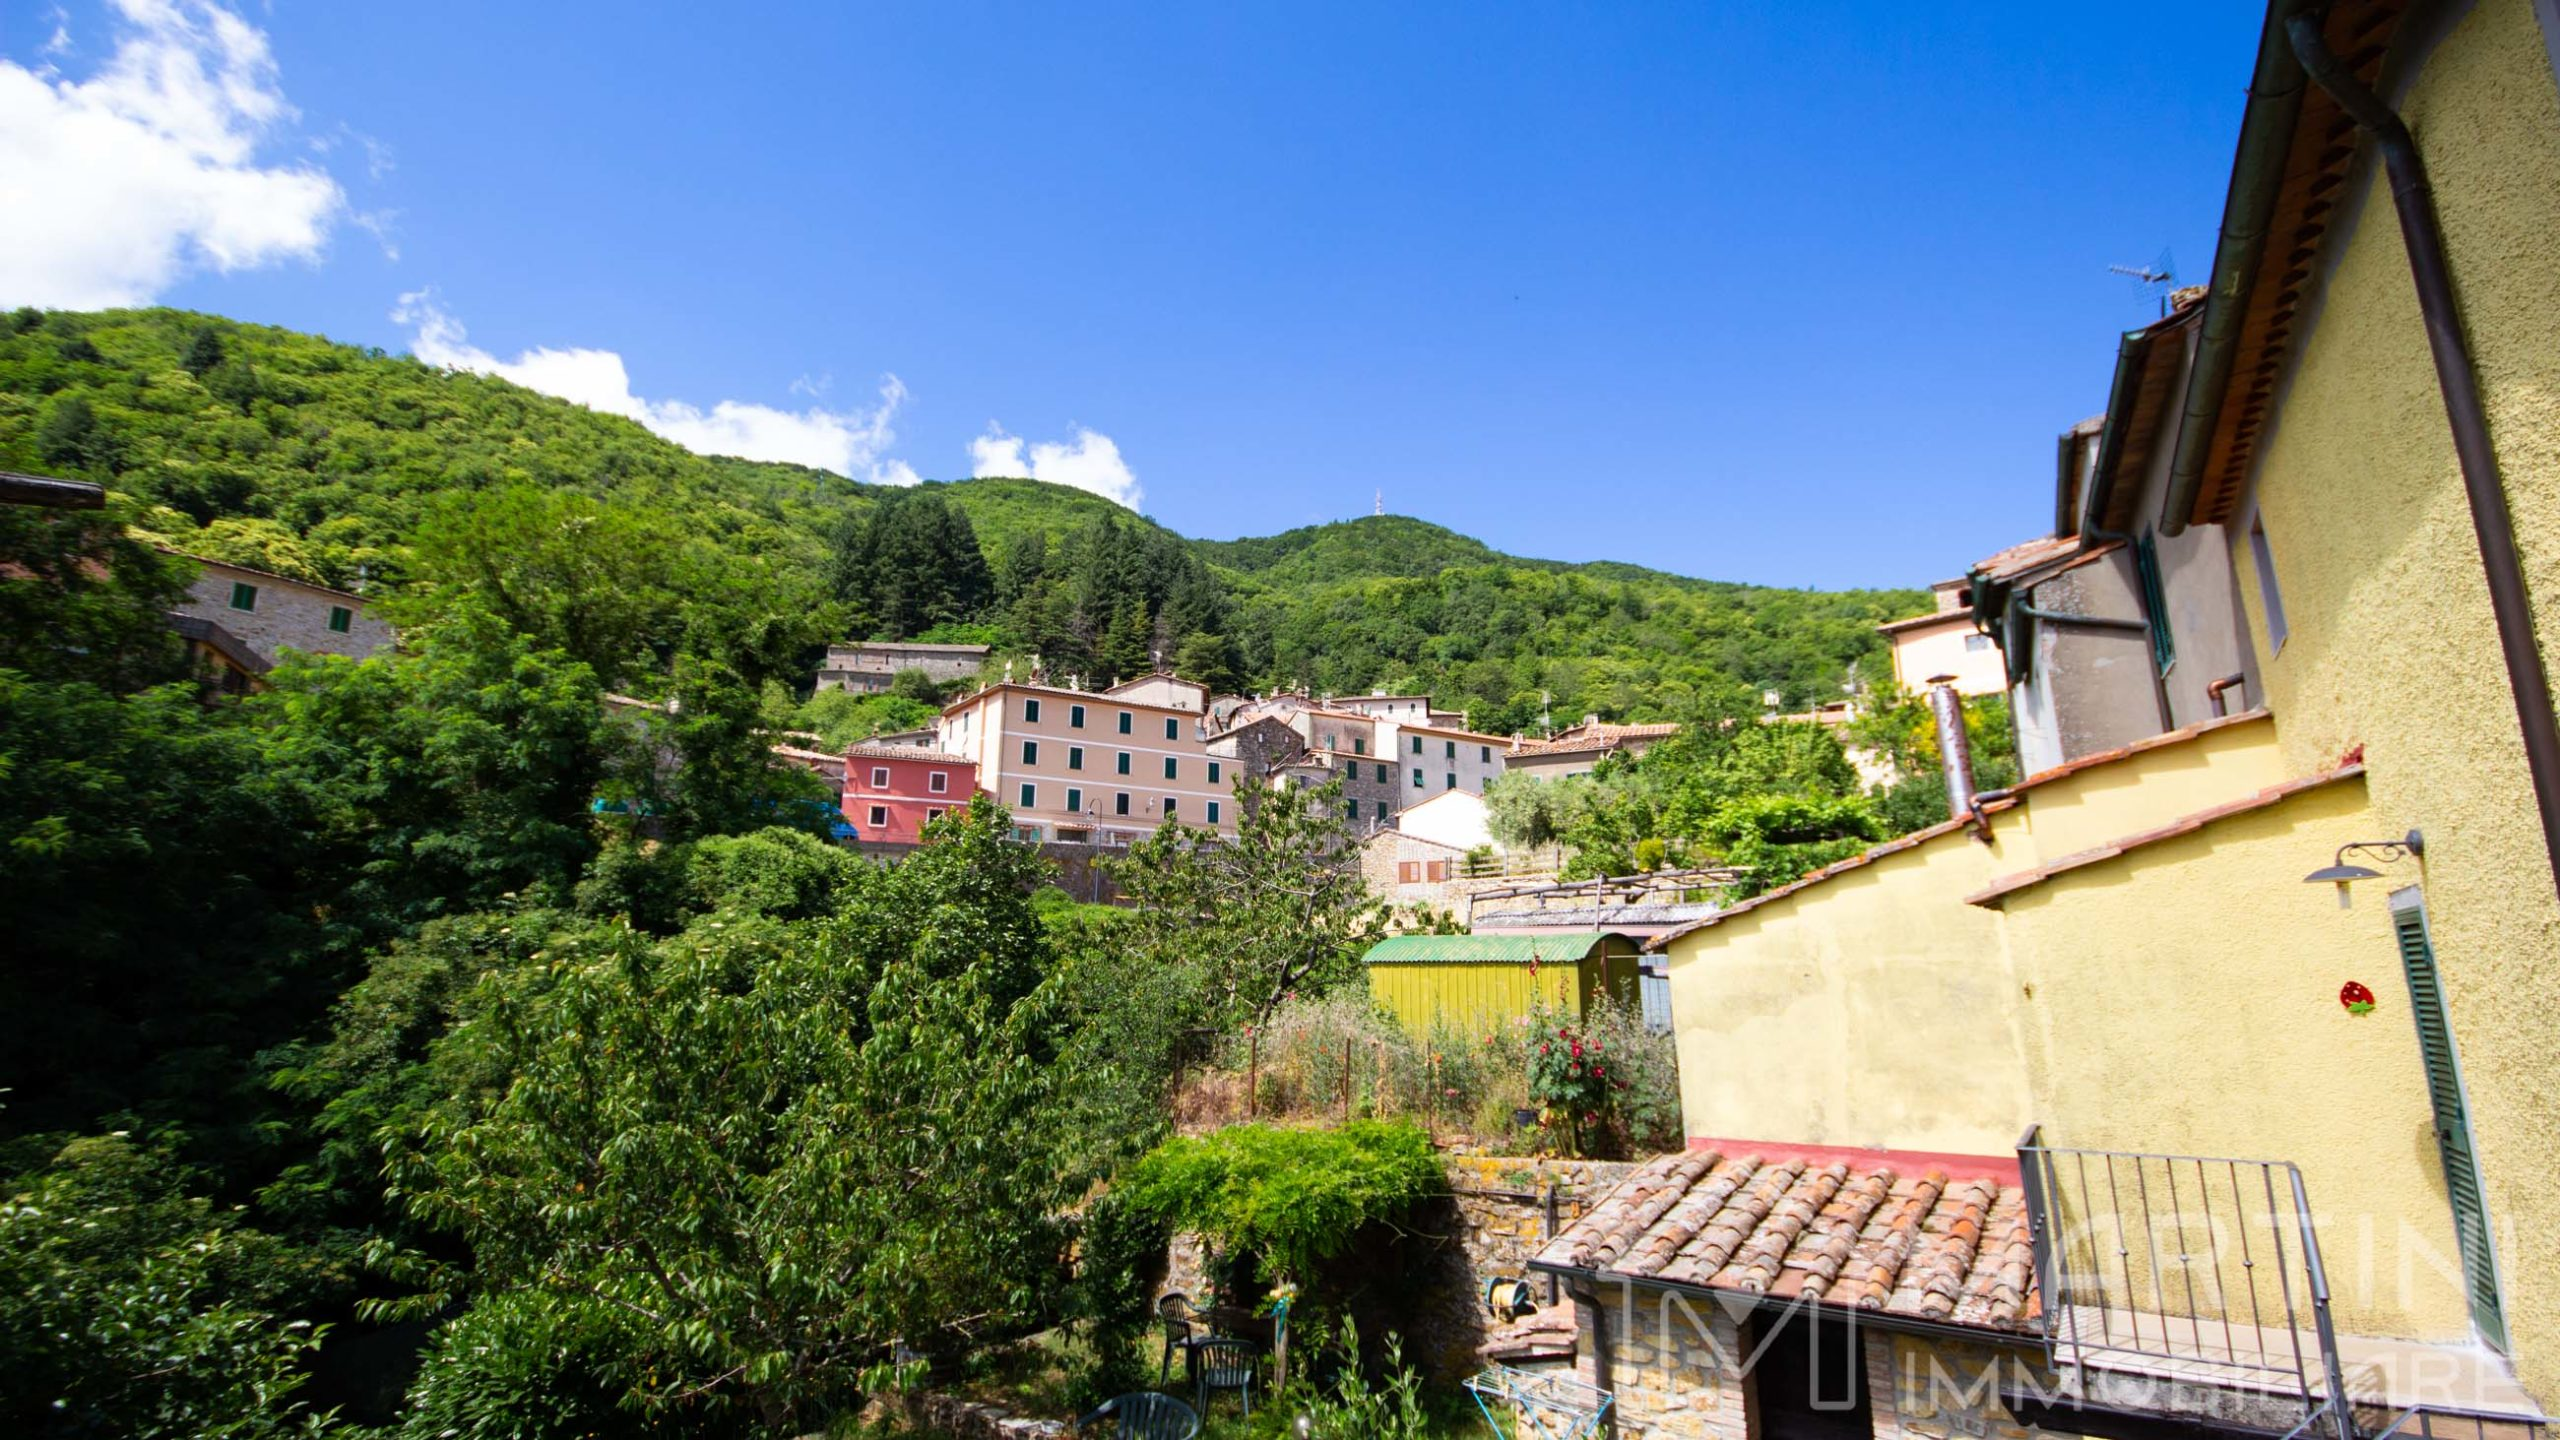 House with Garden for Sale in Montieri – Tuscany